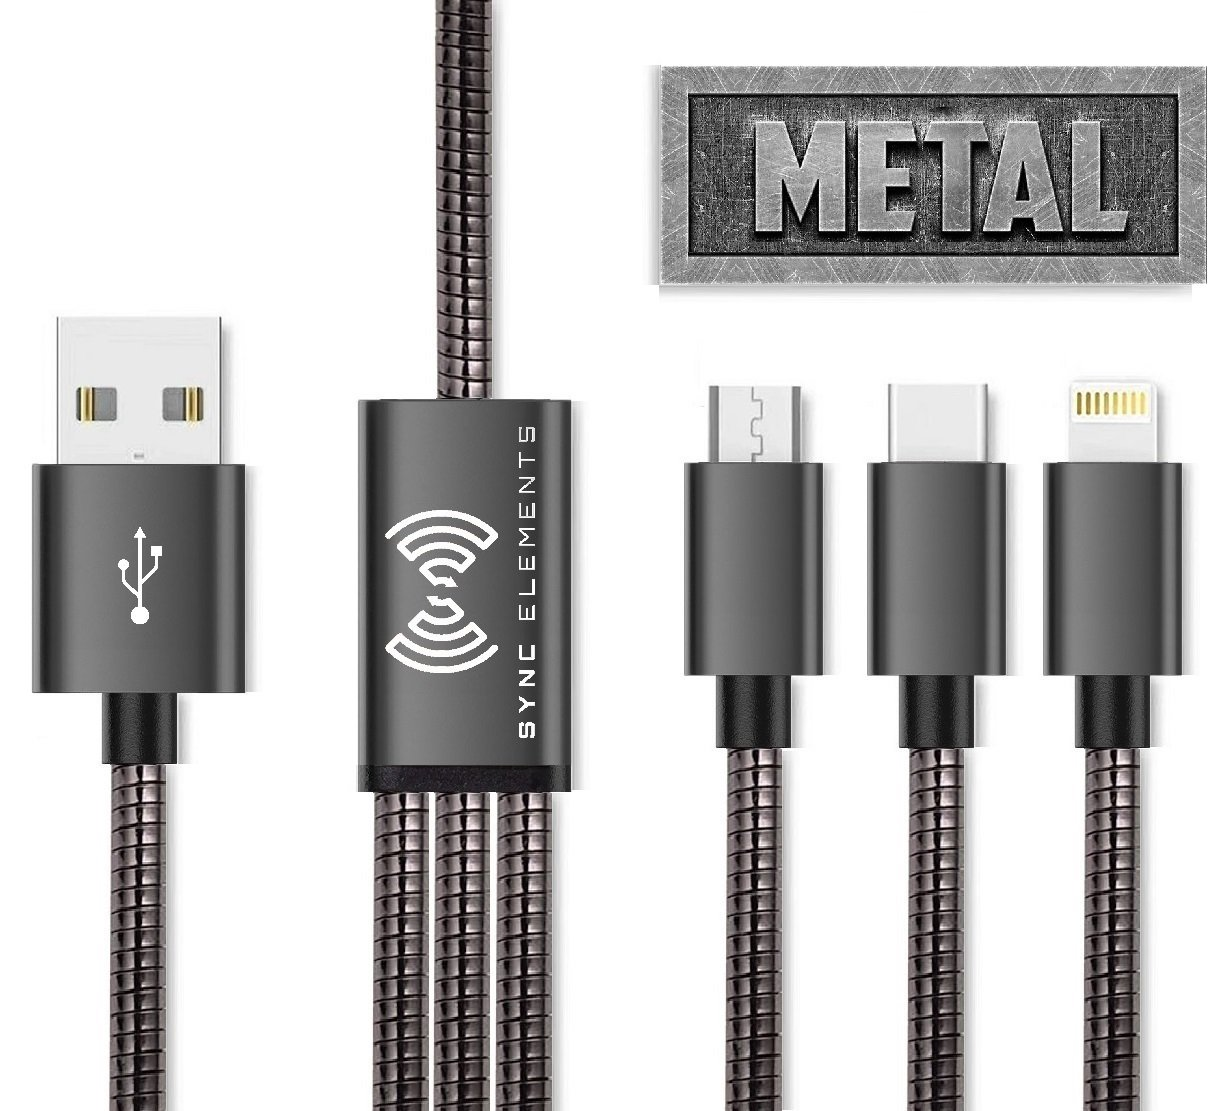 The 1st And Only Metal Braided Multi USB Charging Cable 4 ft. by SYNC ELEMENTS 3 in 1 Lightning, Type C, Micro USB Charger For All Android, Samsung Galaxy S9/Note 8, iPhone X/8/ and More (Dark Gray)